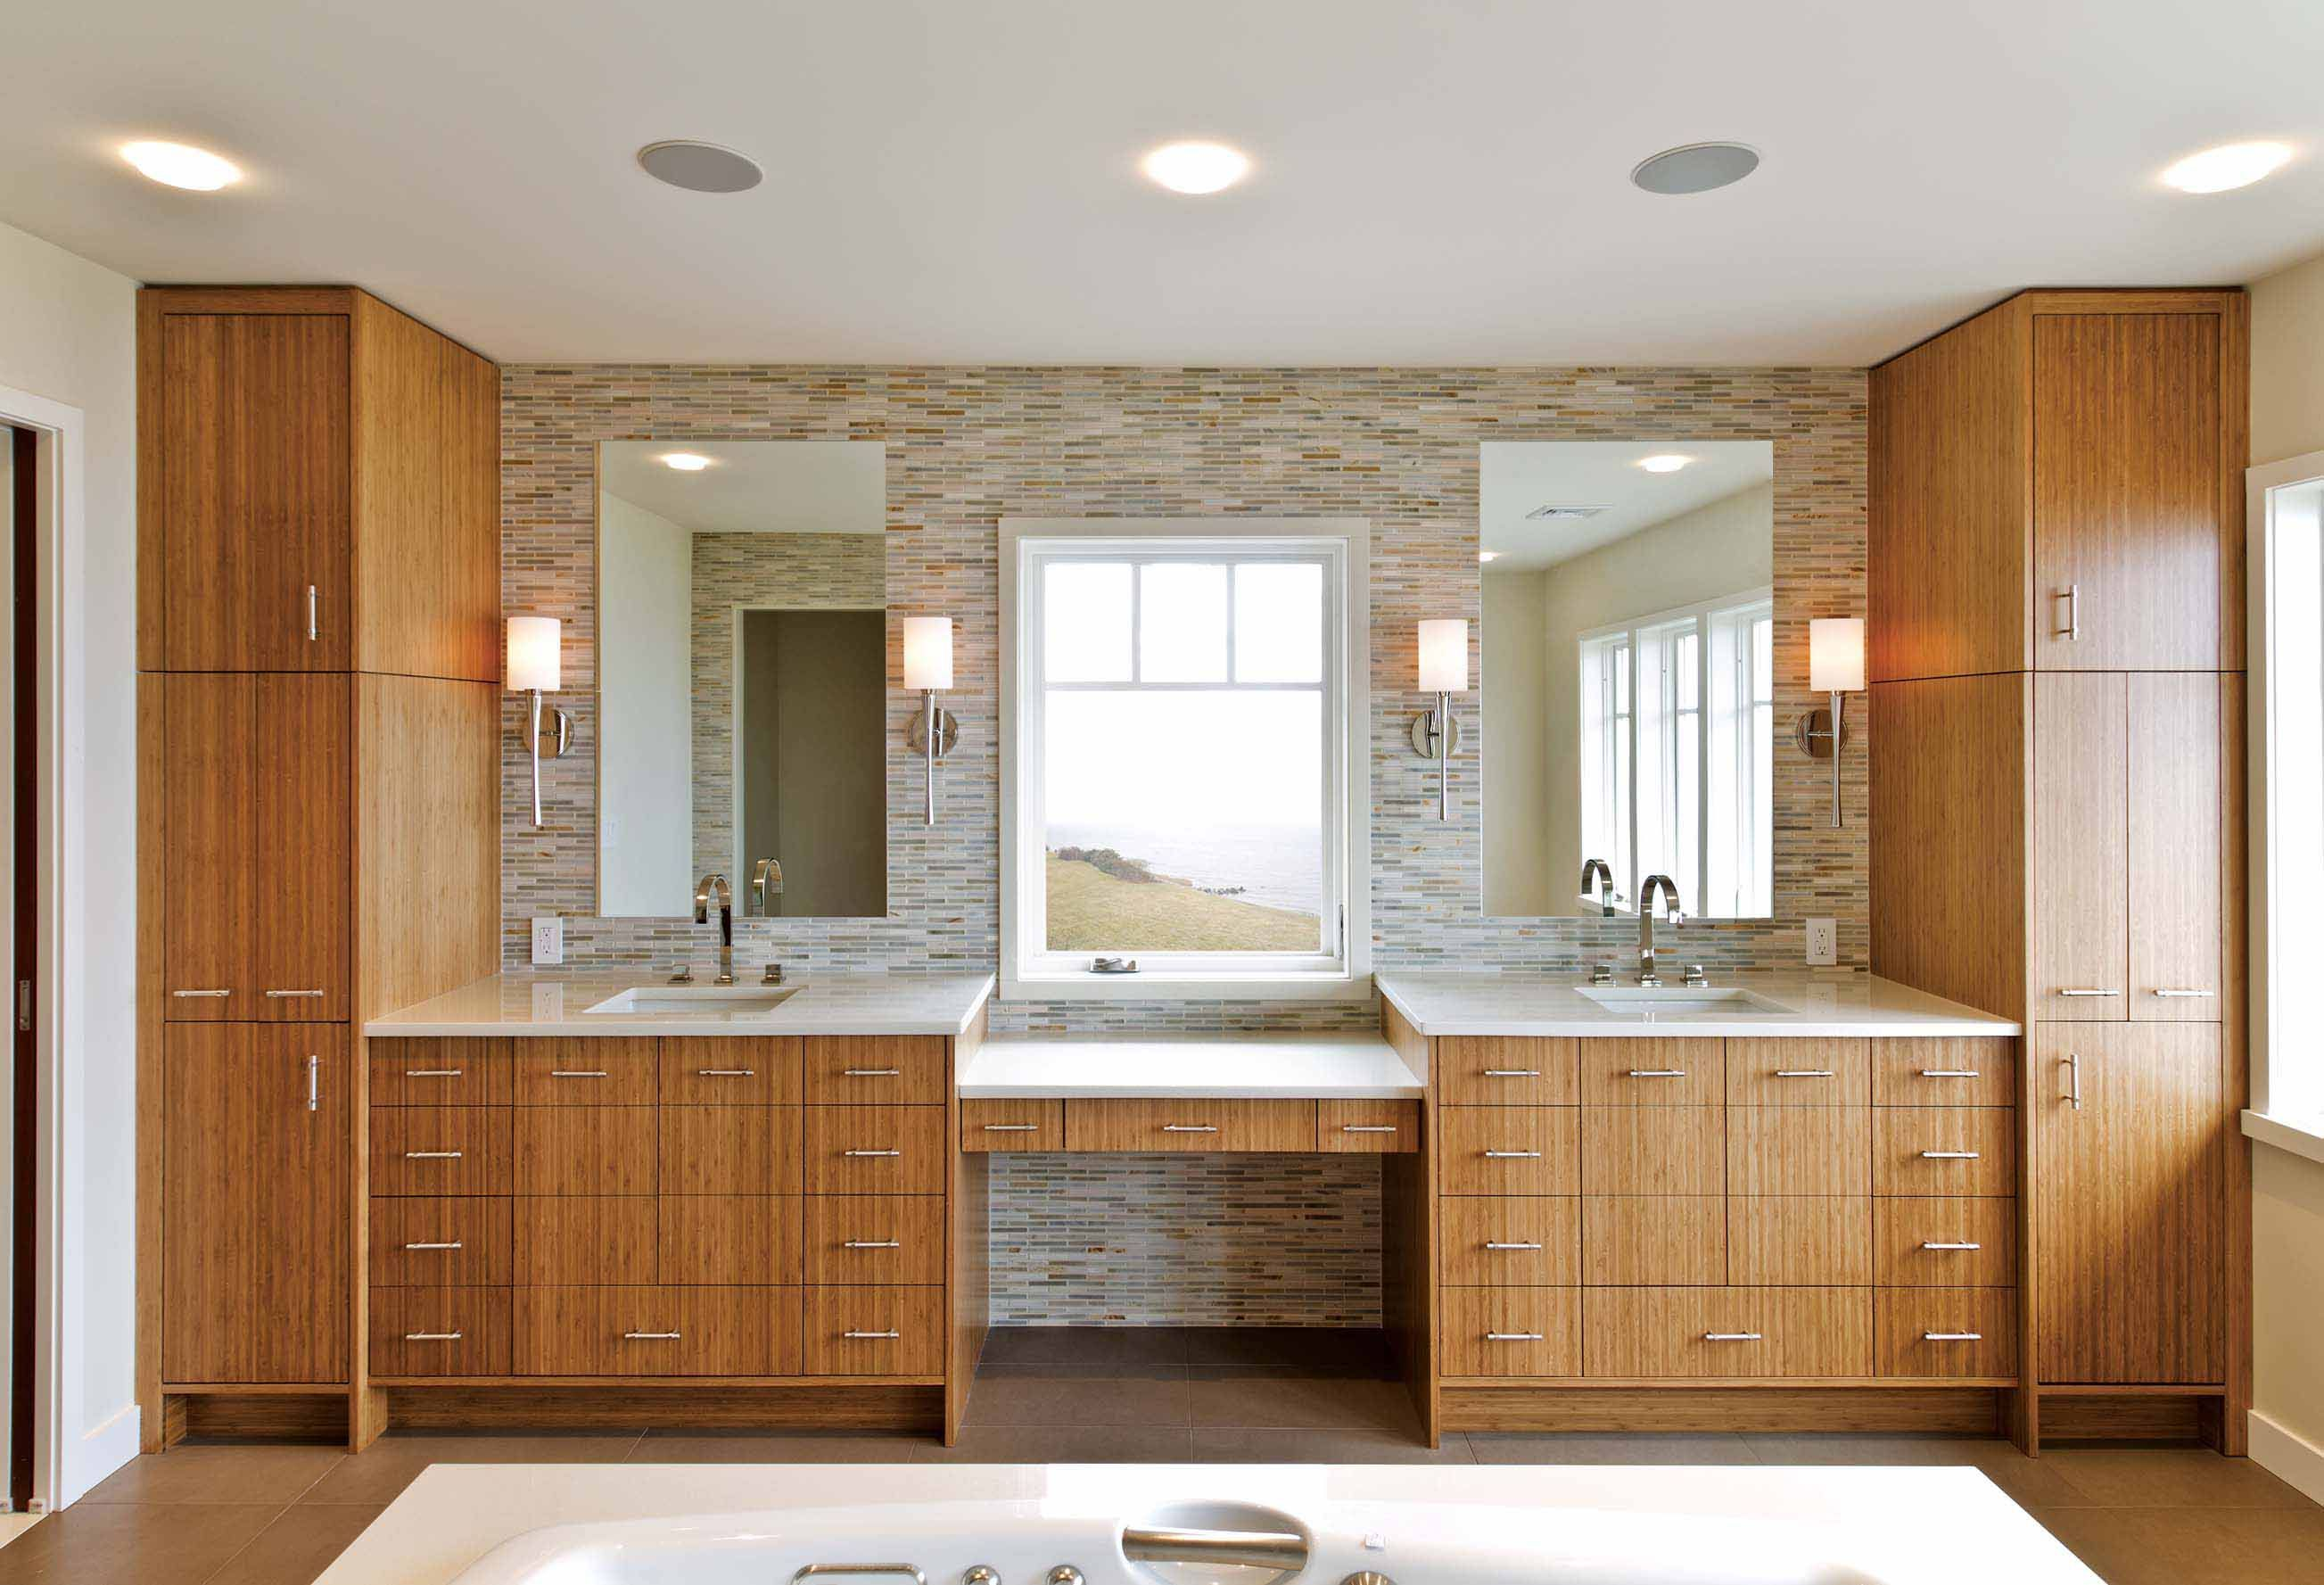 Rhode Island Coastline - Kelly Taylor Interior Design ...